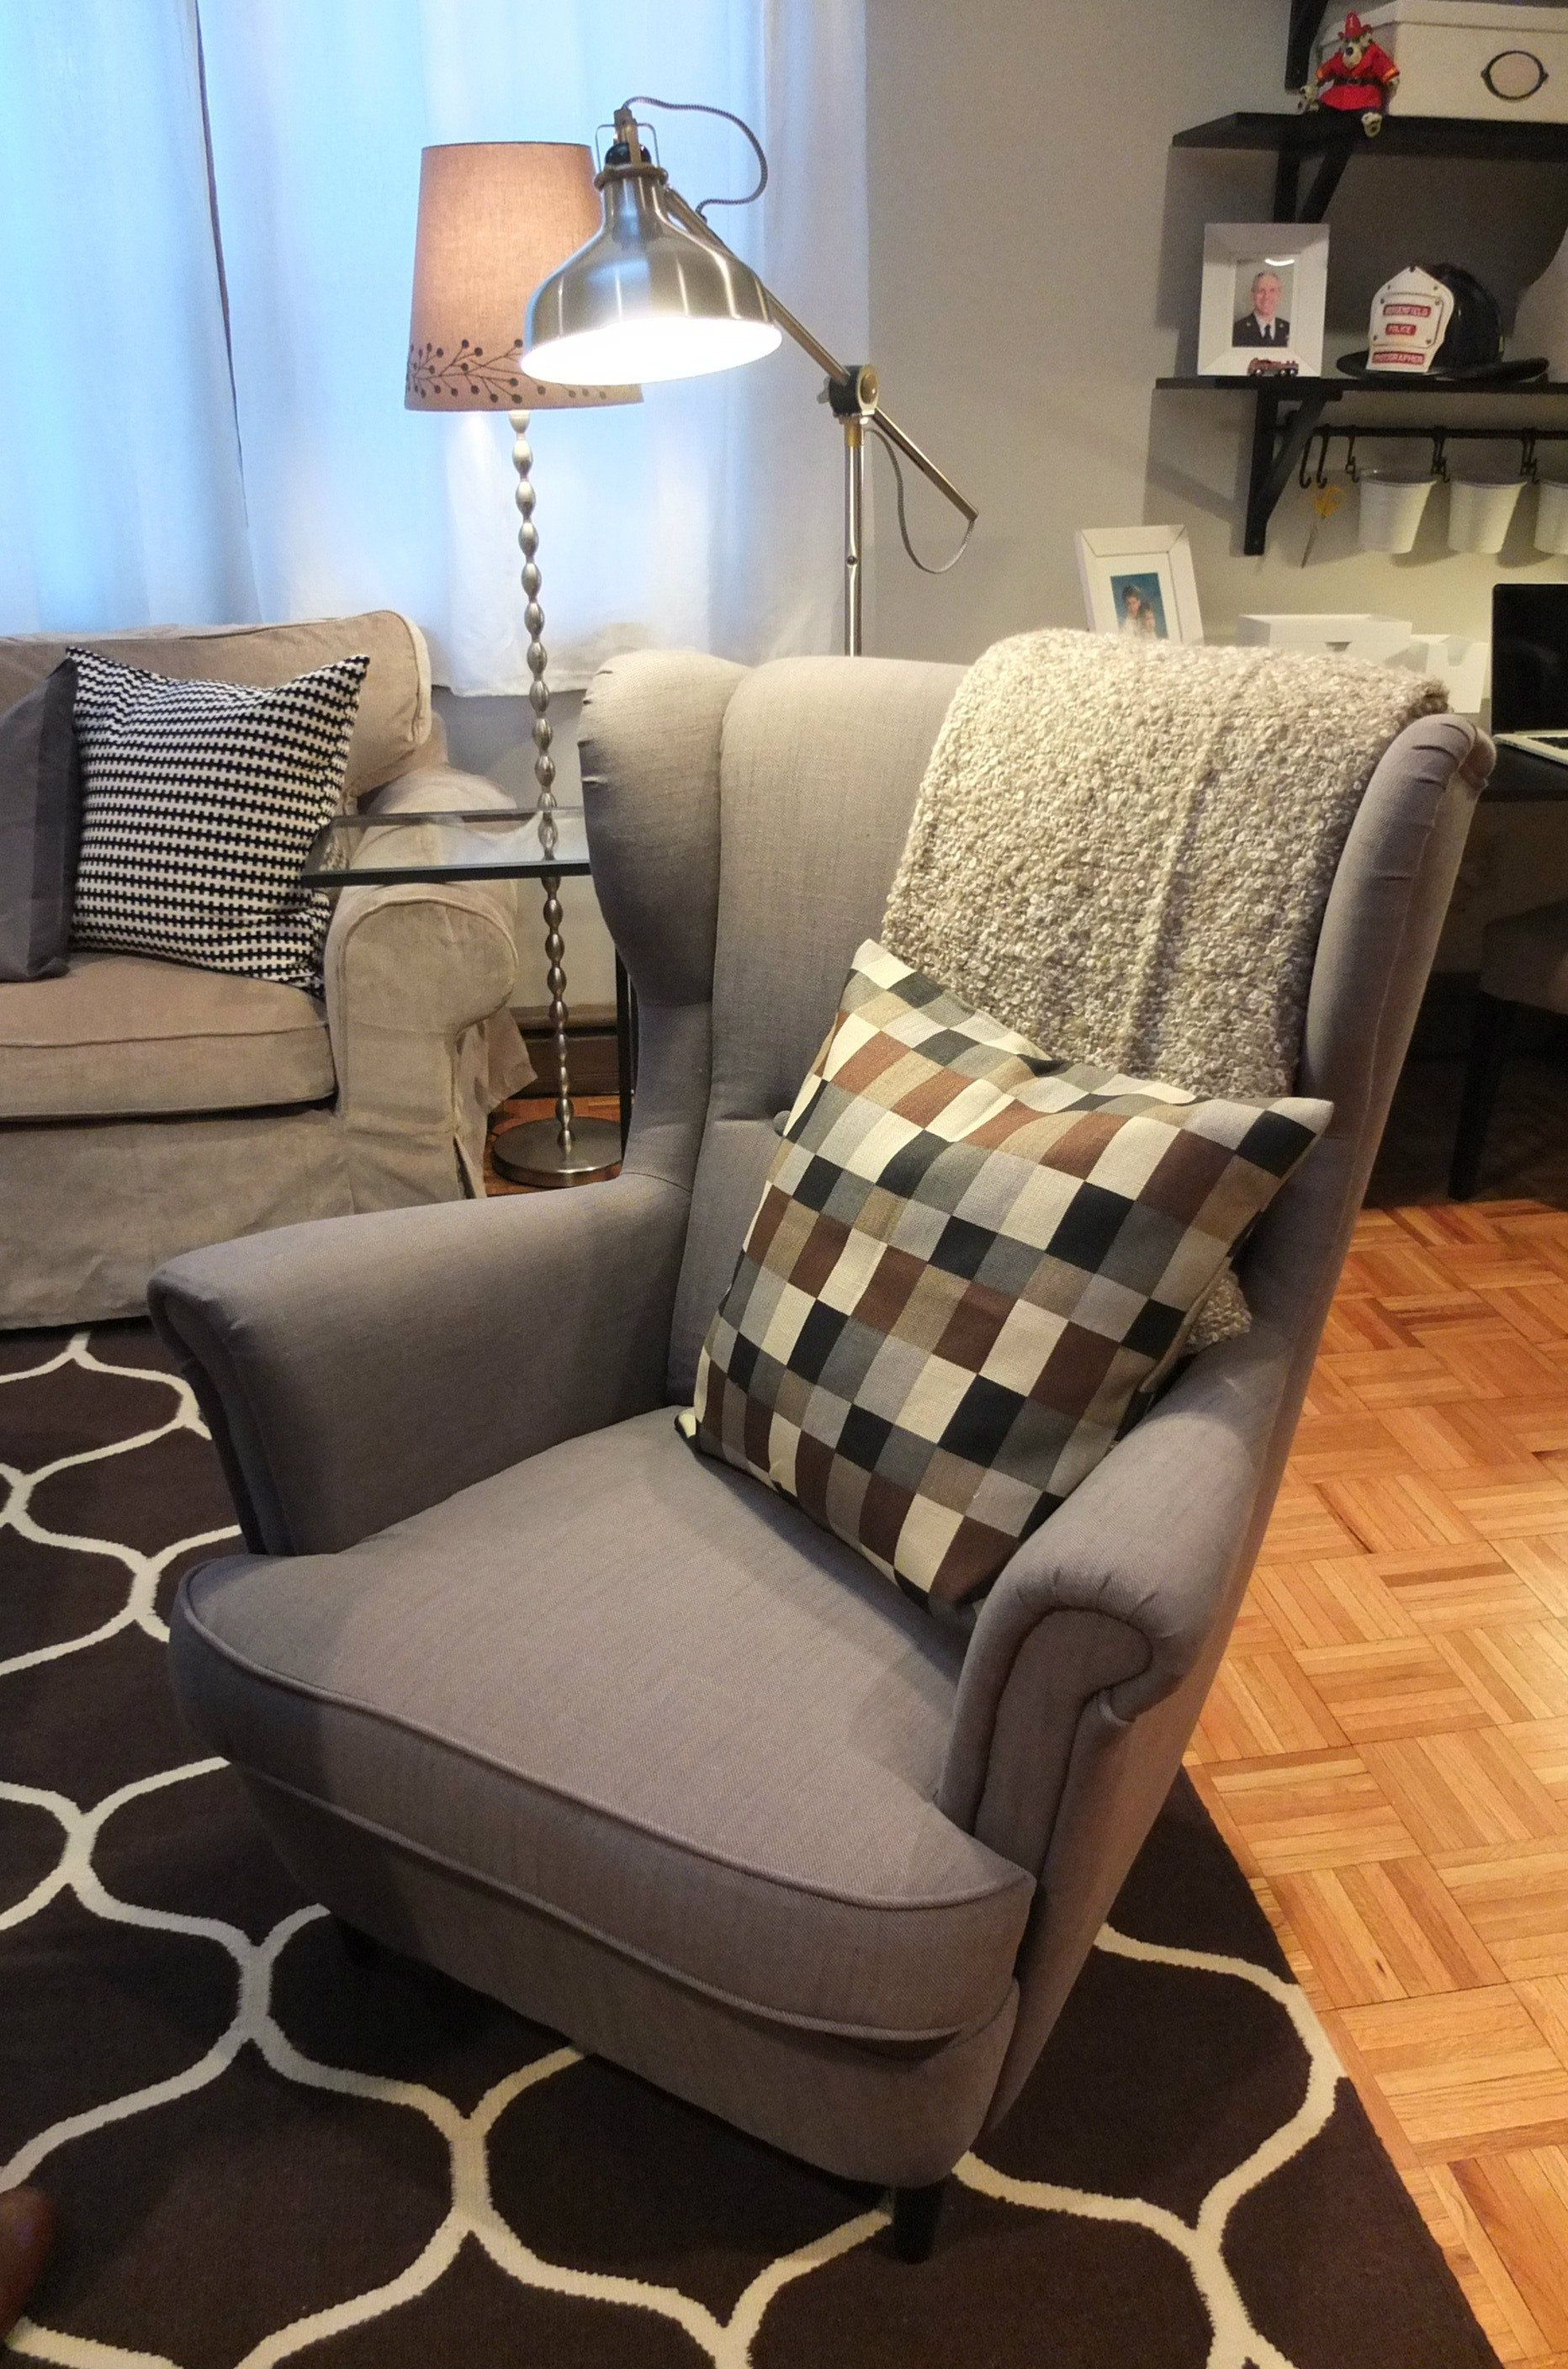 Ikea Strandmon Sessel Grau The Ikea Strandmon Wing Chair Is A Comfortable Piece With A